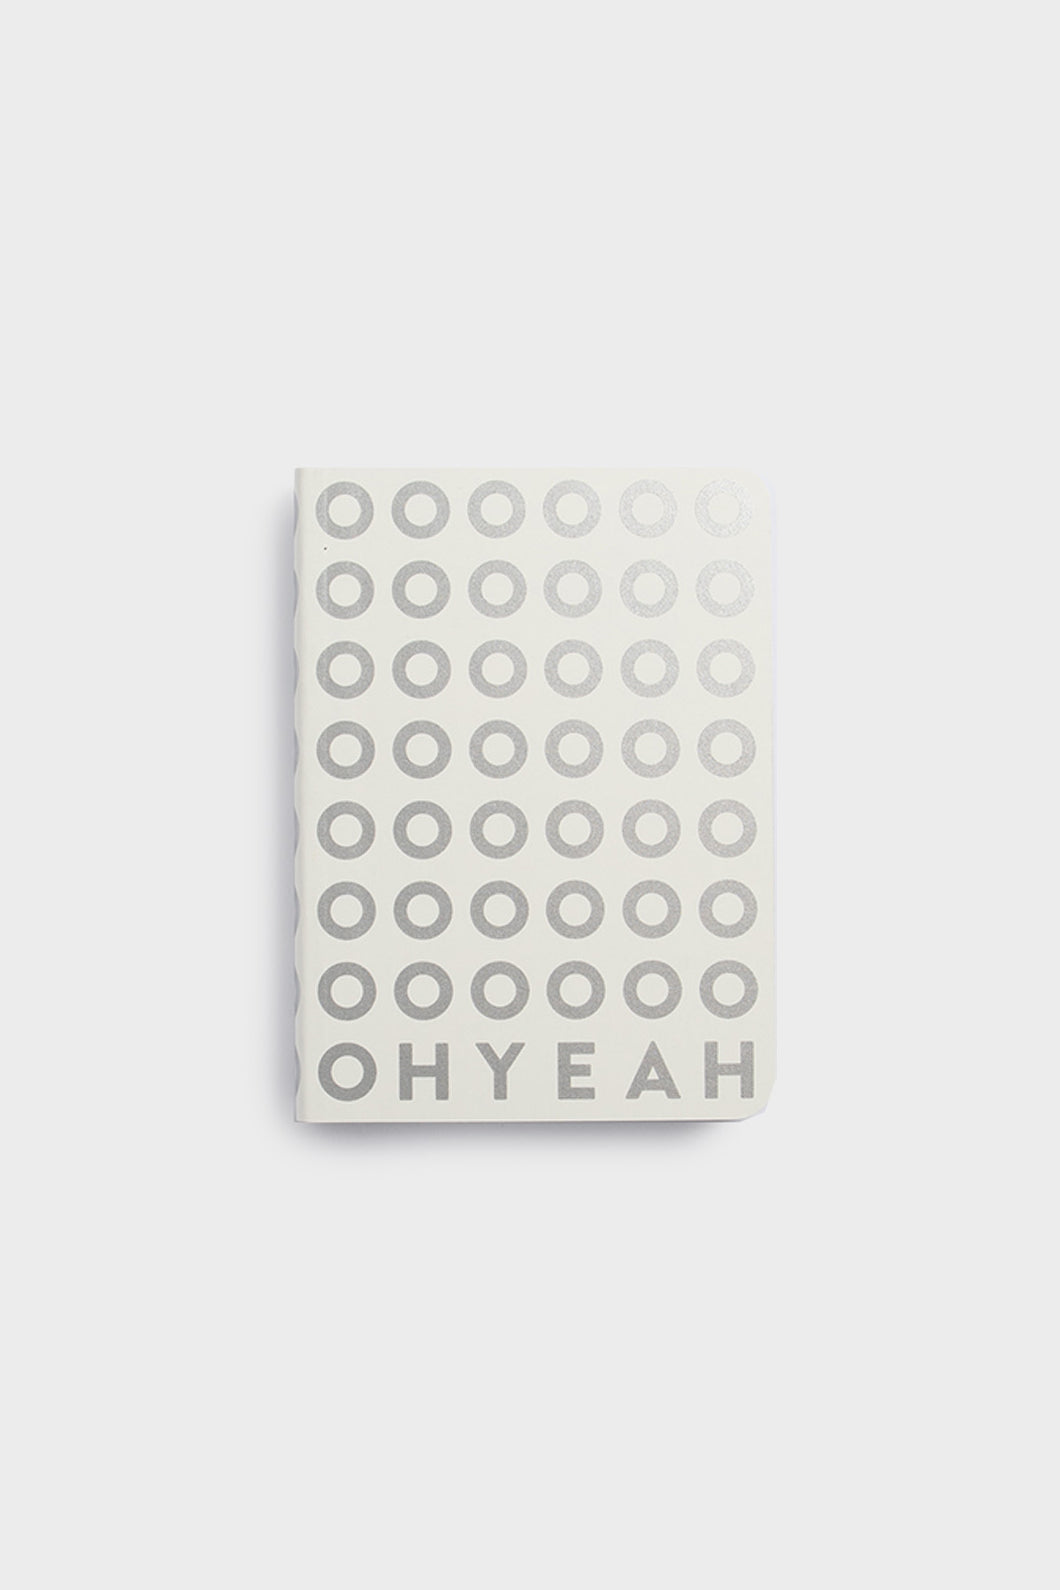 nuuna - Graphic Notebook - Mini Dot Grid - Small - Oh Yeah